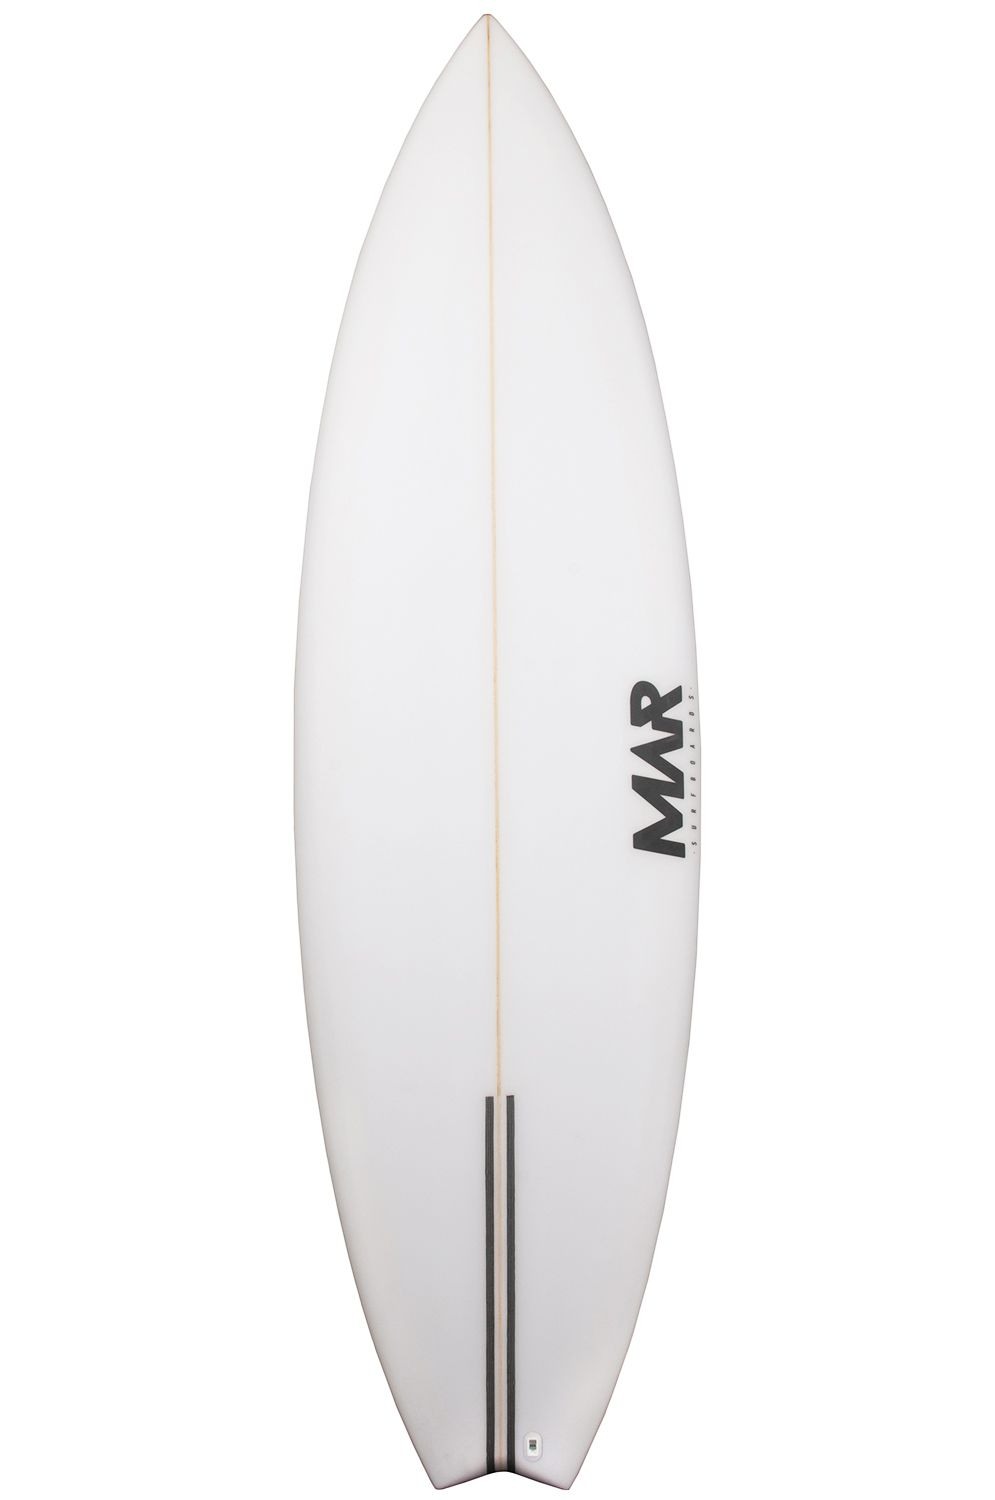 Mar Surf Board 5'8 PARROT Swallow Tail - White FCS II 5ft8